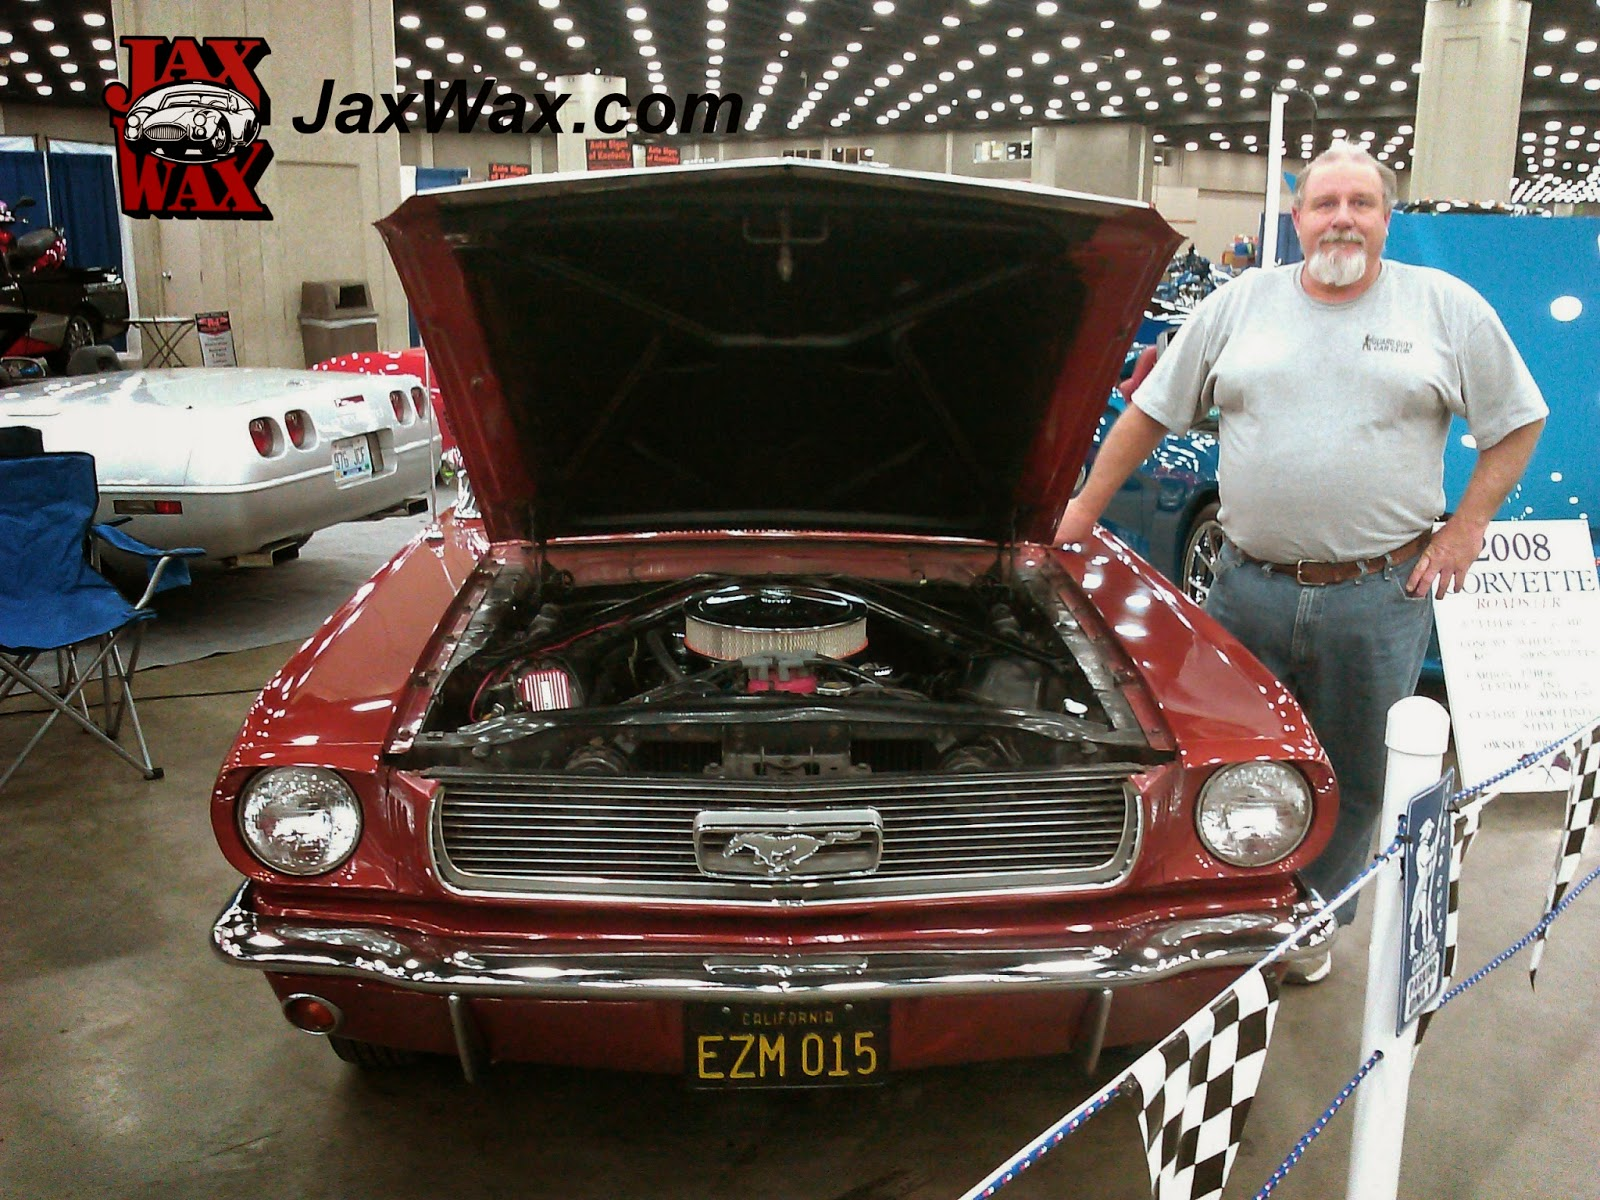 1966 Ford Mustang Convertible Carl Casper Auto Show Jax Wax Customer